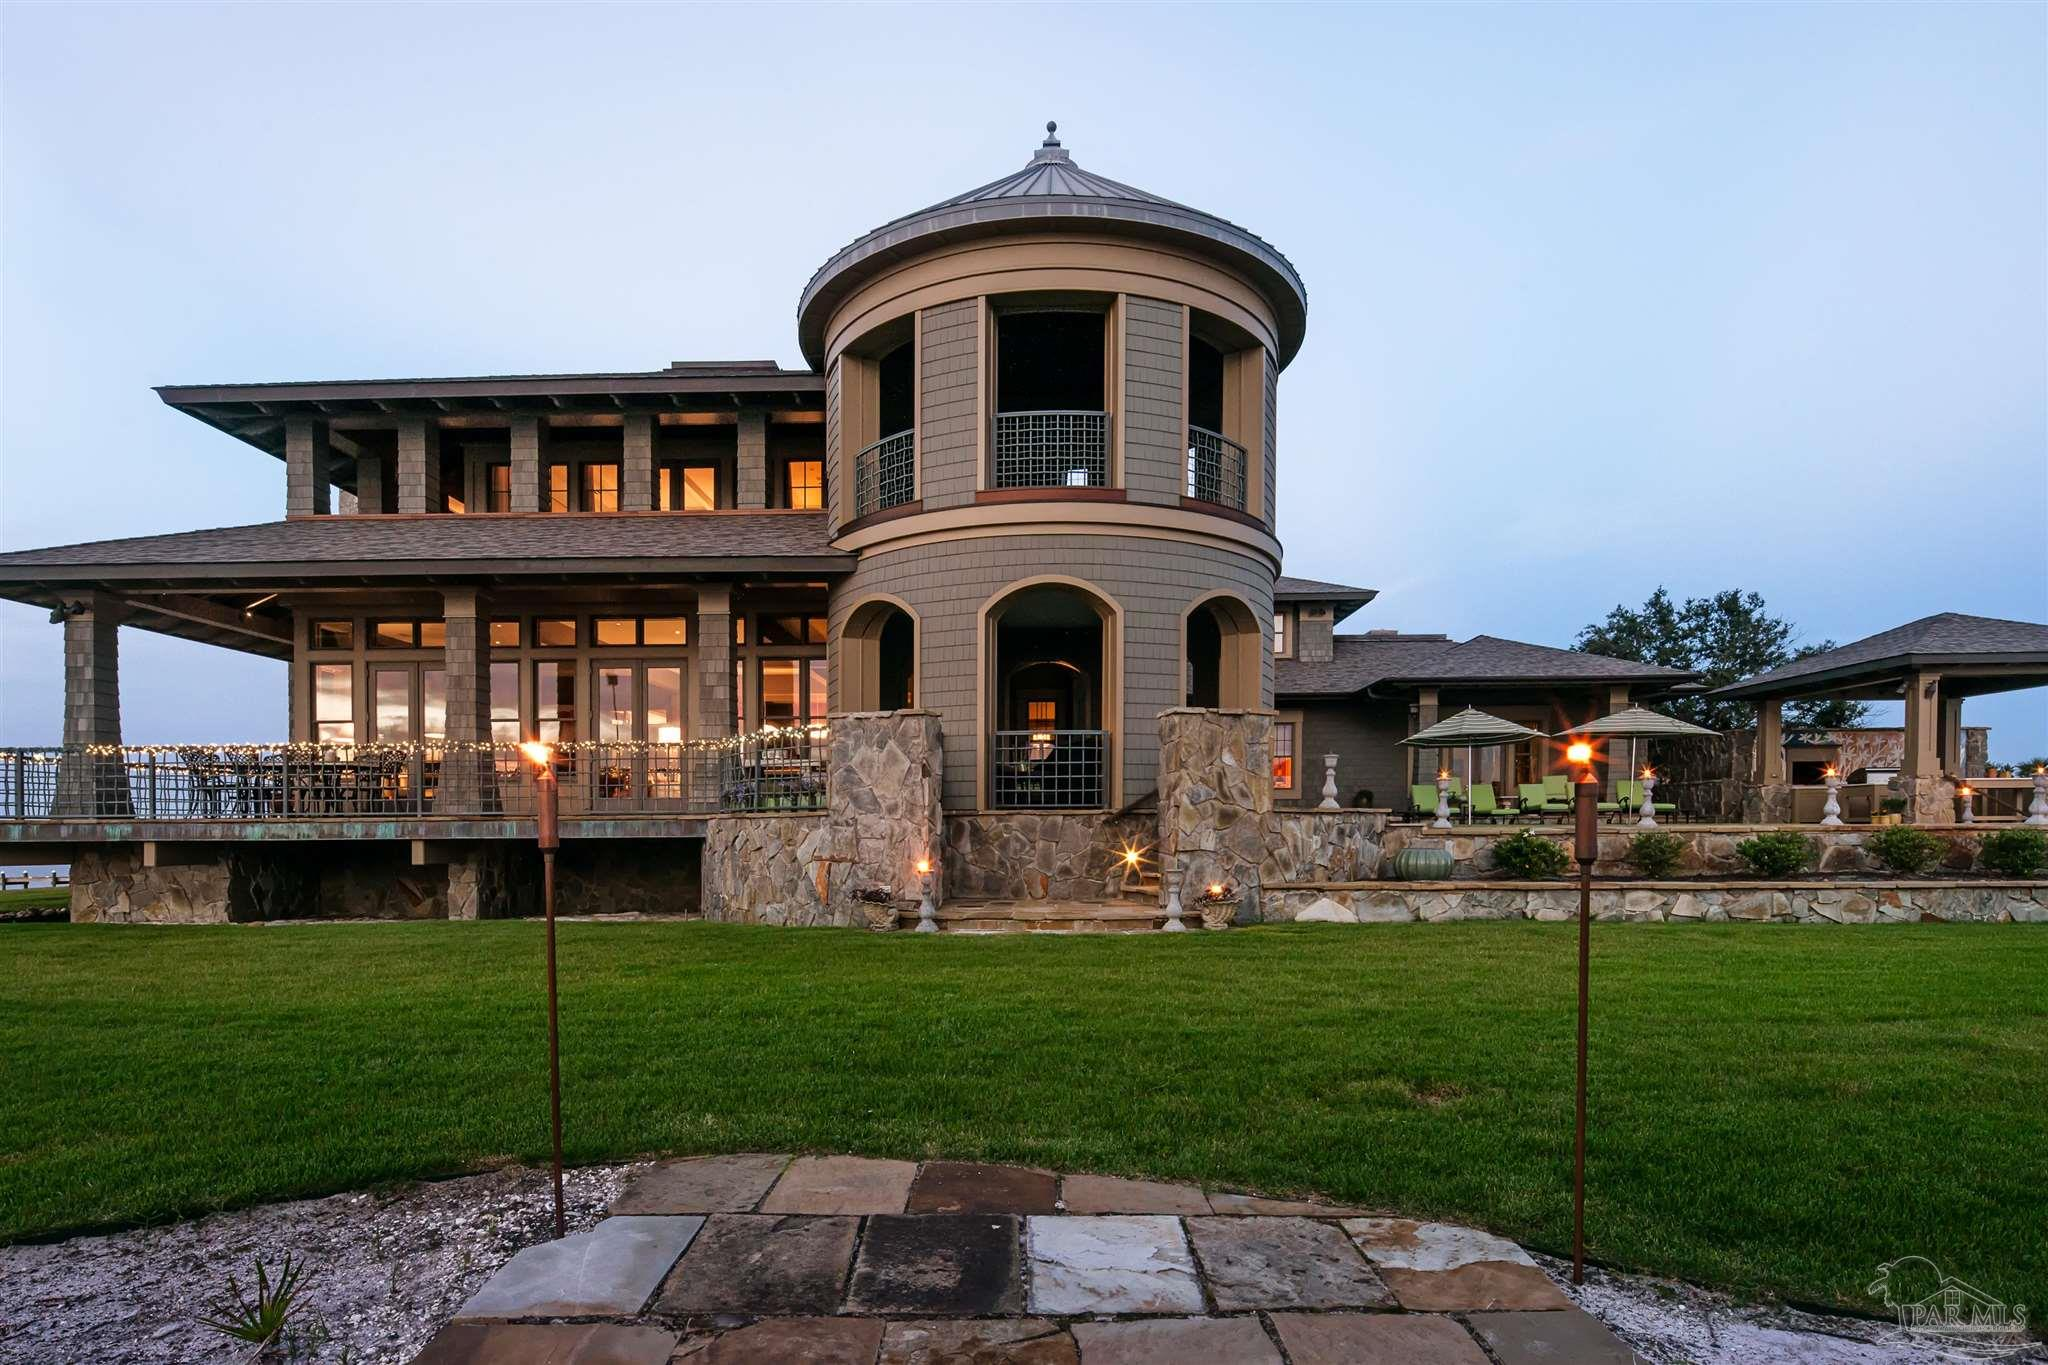 At the Western tip of the Peake's Point Peninsula, sits 732 Peake's Point. The definition of luxury and elegance. This timeless beauty offers just under 12,000 square feet with breath taking 300° Views of Pensacola Bay and the Intracoastal Waterway - lively vistas in every direction make this home site the diamond in a sea of emerald.  Across Pensacola Bay, enjoy the passing of ships in and out of port and the sparkling lights of downtown shimmering on still night waters. This home's location makes it a great place to watch the US Navy Blue Angels team fly in their tight formations during seasonal practices. To the southwest, on a clear day, you can see historic Fort Pickens and the city of Mobile, Alabama beyond. Views of Pensacola Bay to the north and Santa Rosa Sound to the South. And of course serene sunsets to the west. Enjoy walking and fishing from your 1000+ feet of beach and shore line, or take your boat out to the Gulf only minutes from your dock. This home is situated in a private and gated community of only 20 properties. 732 Peake's Point is at the pinnacle of the small enclave.  Attention to every detail was paid in the creation and construction of this Private Waterfront estate. The owner Poured over the details and searched both local and international artisans to create and incorporate all the features, finishes and stunning accents.  Some of the details: GeoThermal HVAC, Commercial grade elevator, whole house fire suppression system and a whole house generator. Custom designed bronze handrails on the 5000 sq. ft. of porches. Handcrafted Sycamore wood walls in the office and Pear wood walls in the formal dining room. Wayne Dalton Garage doors. Anderson high impact windows. finished off with Spanish cedar shake exterior and a salt water pool.  Come home to your own private oasis and enjoy sunrise and sunset at this truly one of a kind estate.